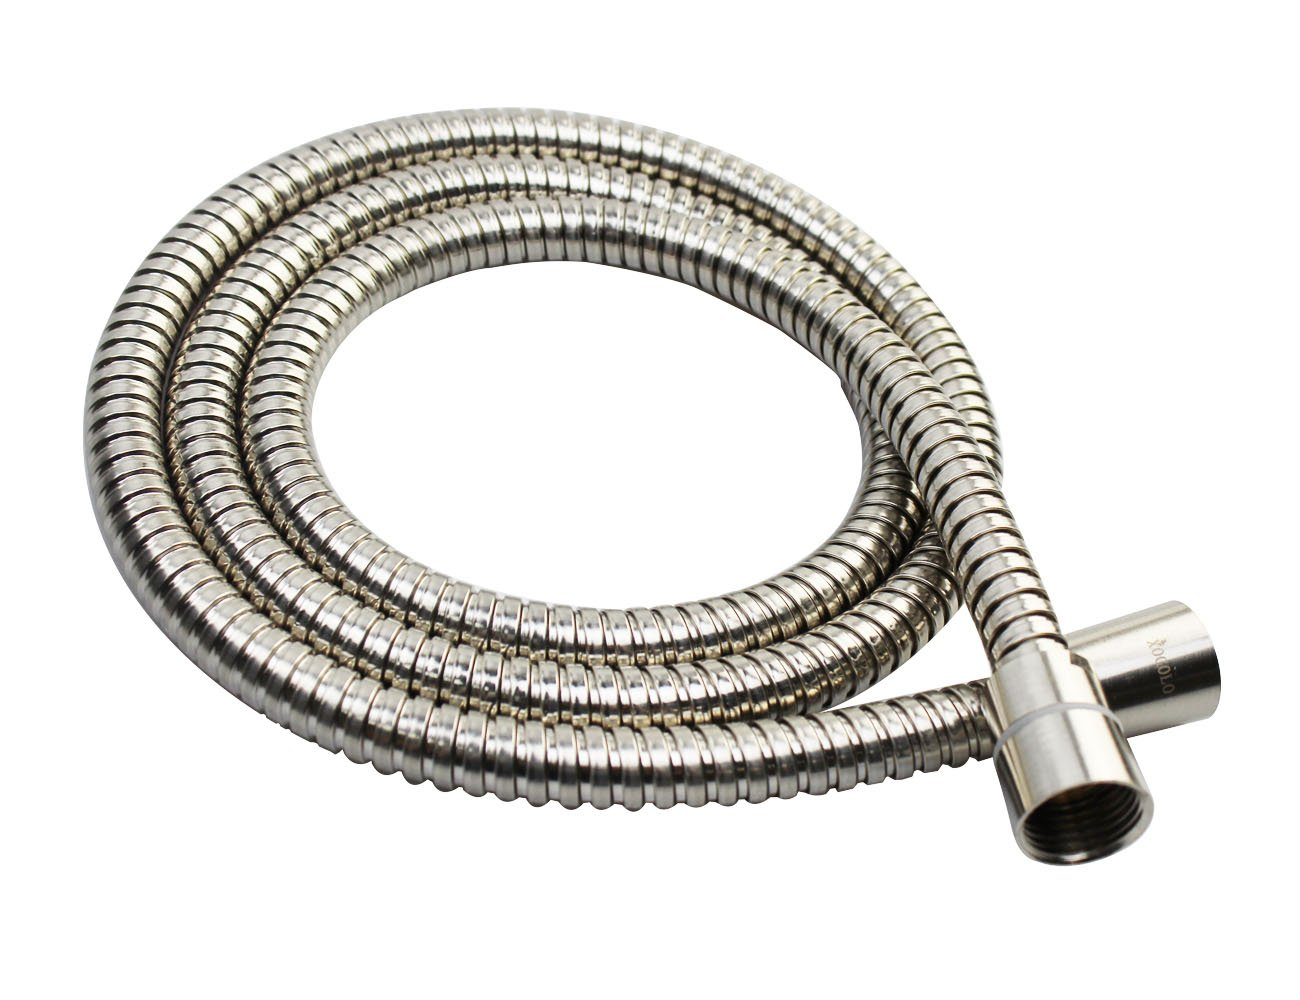 Xogolo 79inch Stainless Steel Shower Hose with Water Restrictor, Brushed Nickel